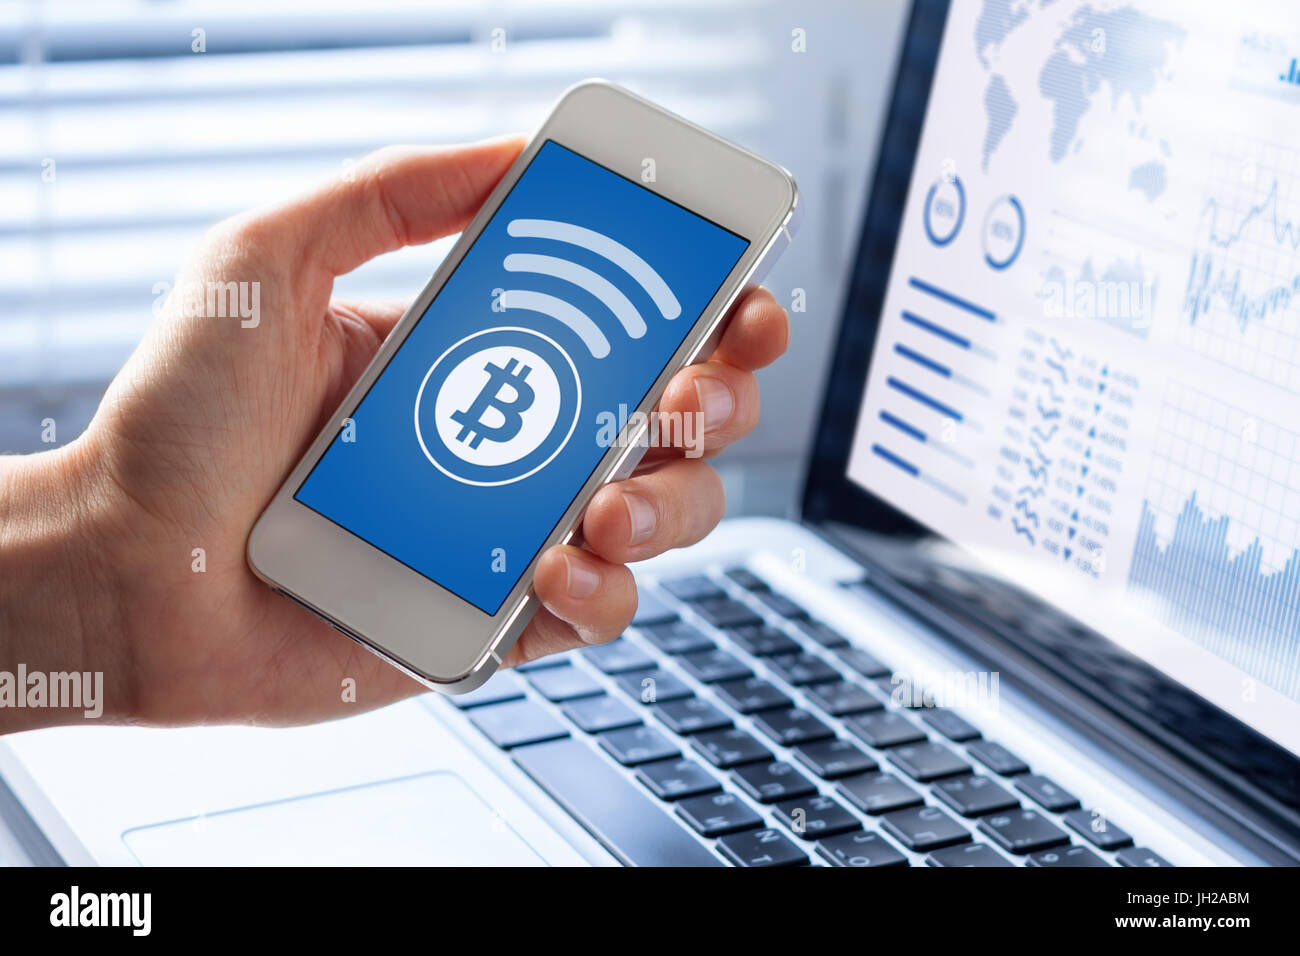 Person sending bitcoin with smartphone for online payment, closeup of mobile phone screen, business office background - Stock Image